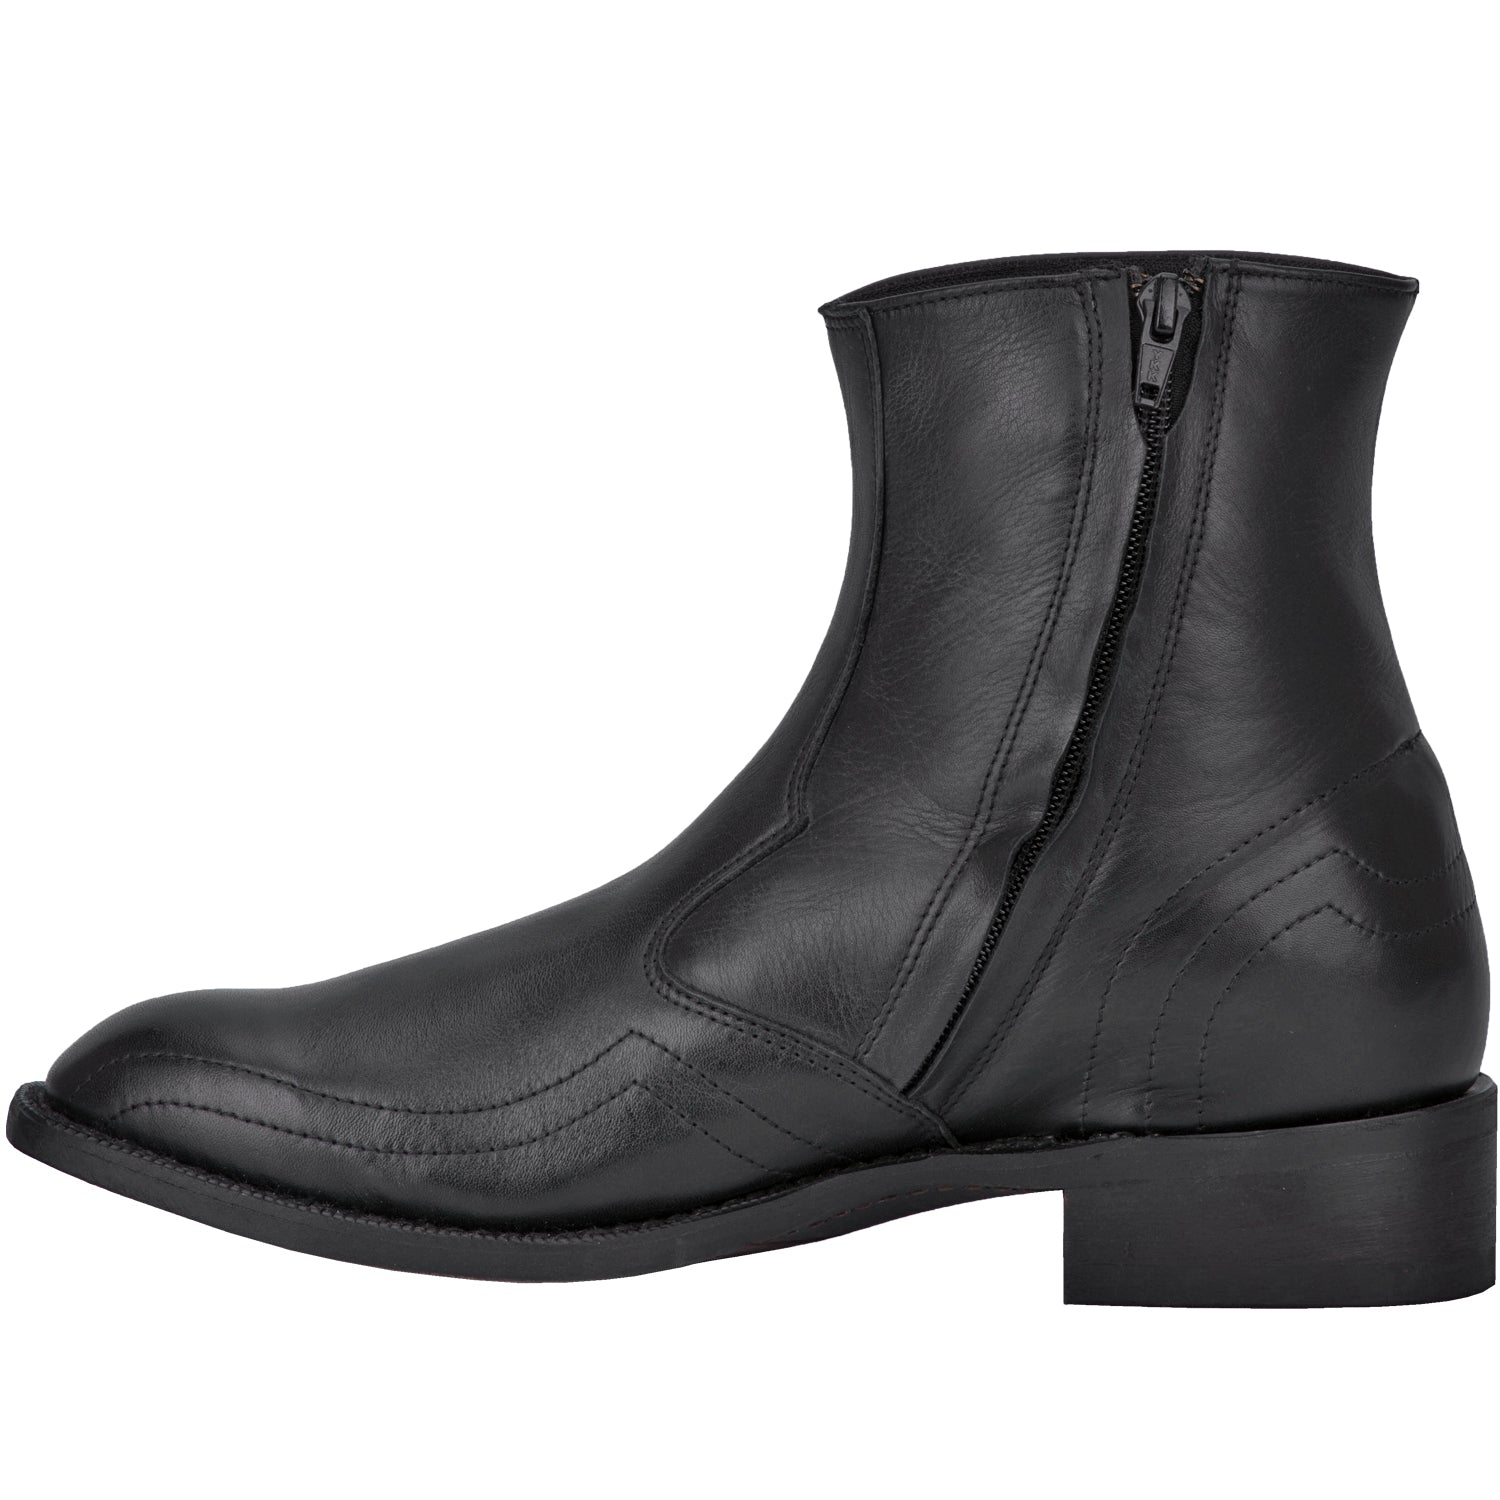 HOXIE LEATHER BOOT 4196605001770